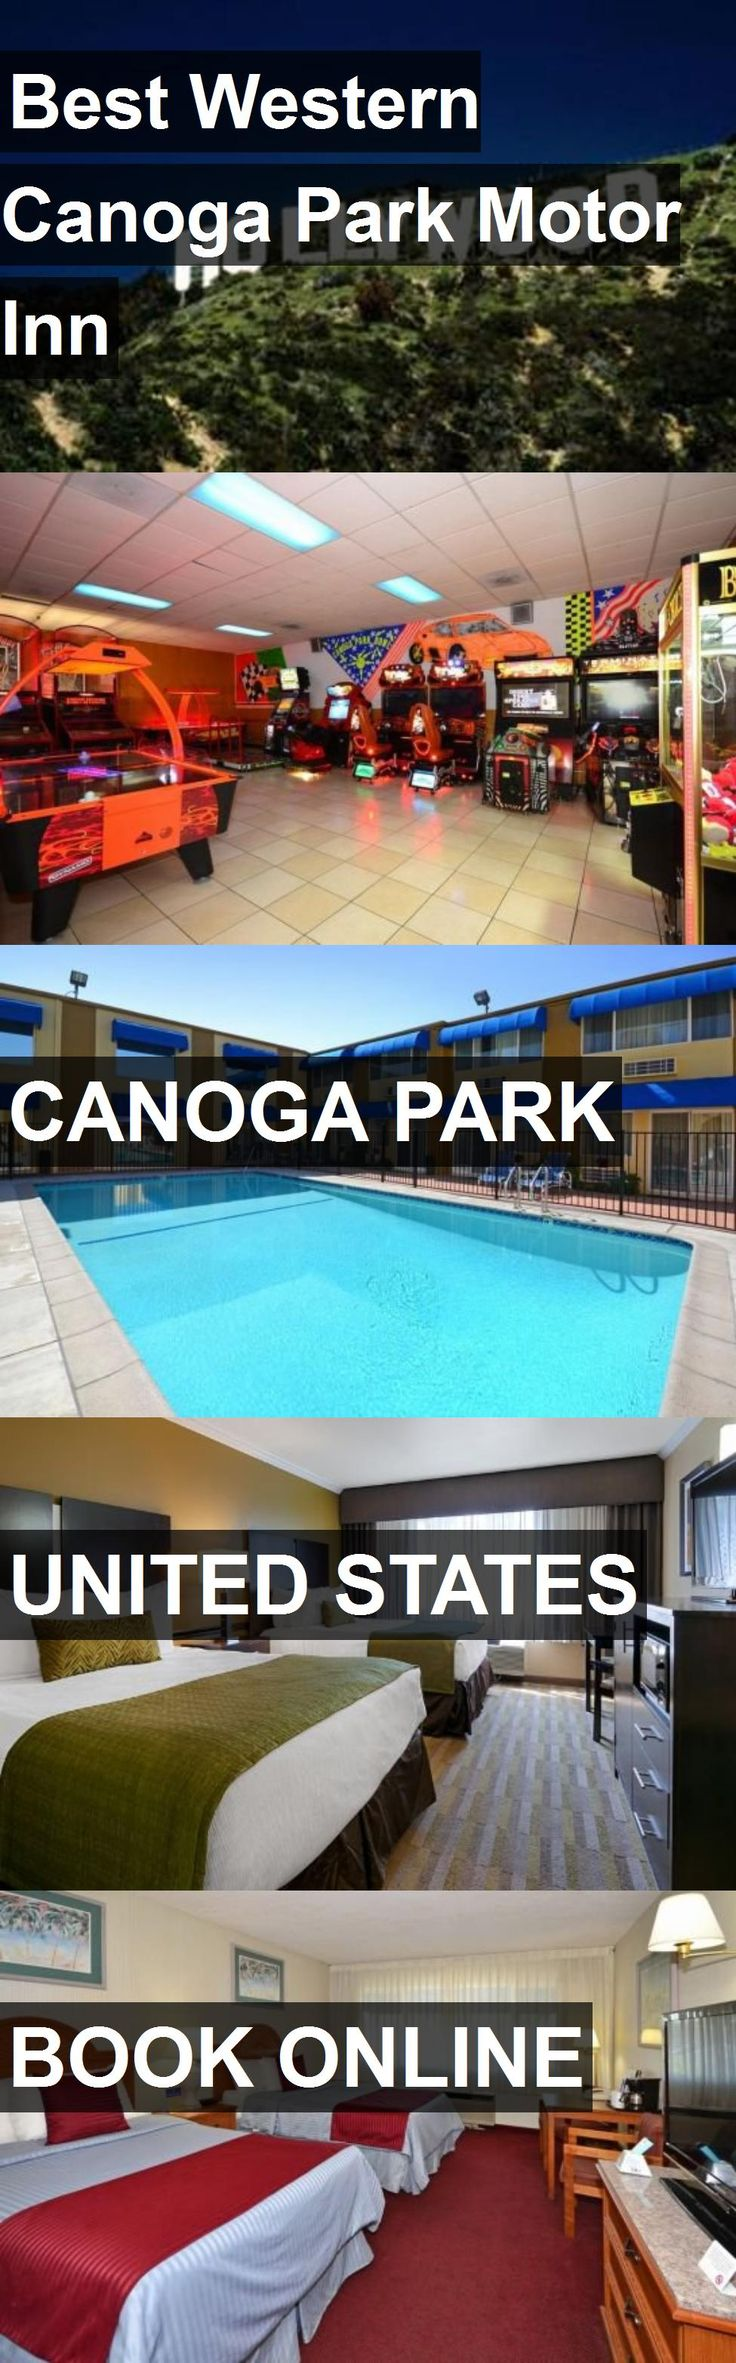 Hotel Best Western Canoga Park Motor Inn in Canoga Park, United States. For more information, photos, reviews and best prices please follow the link. #UnitedStates #CanogaPark #travel #vacation #hotel